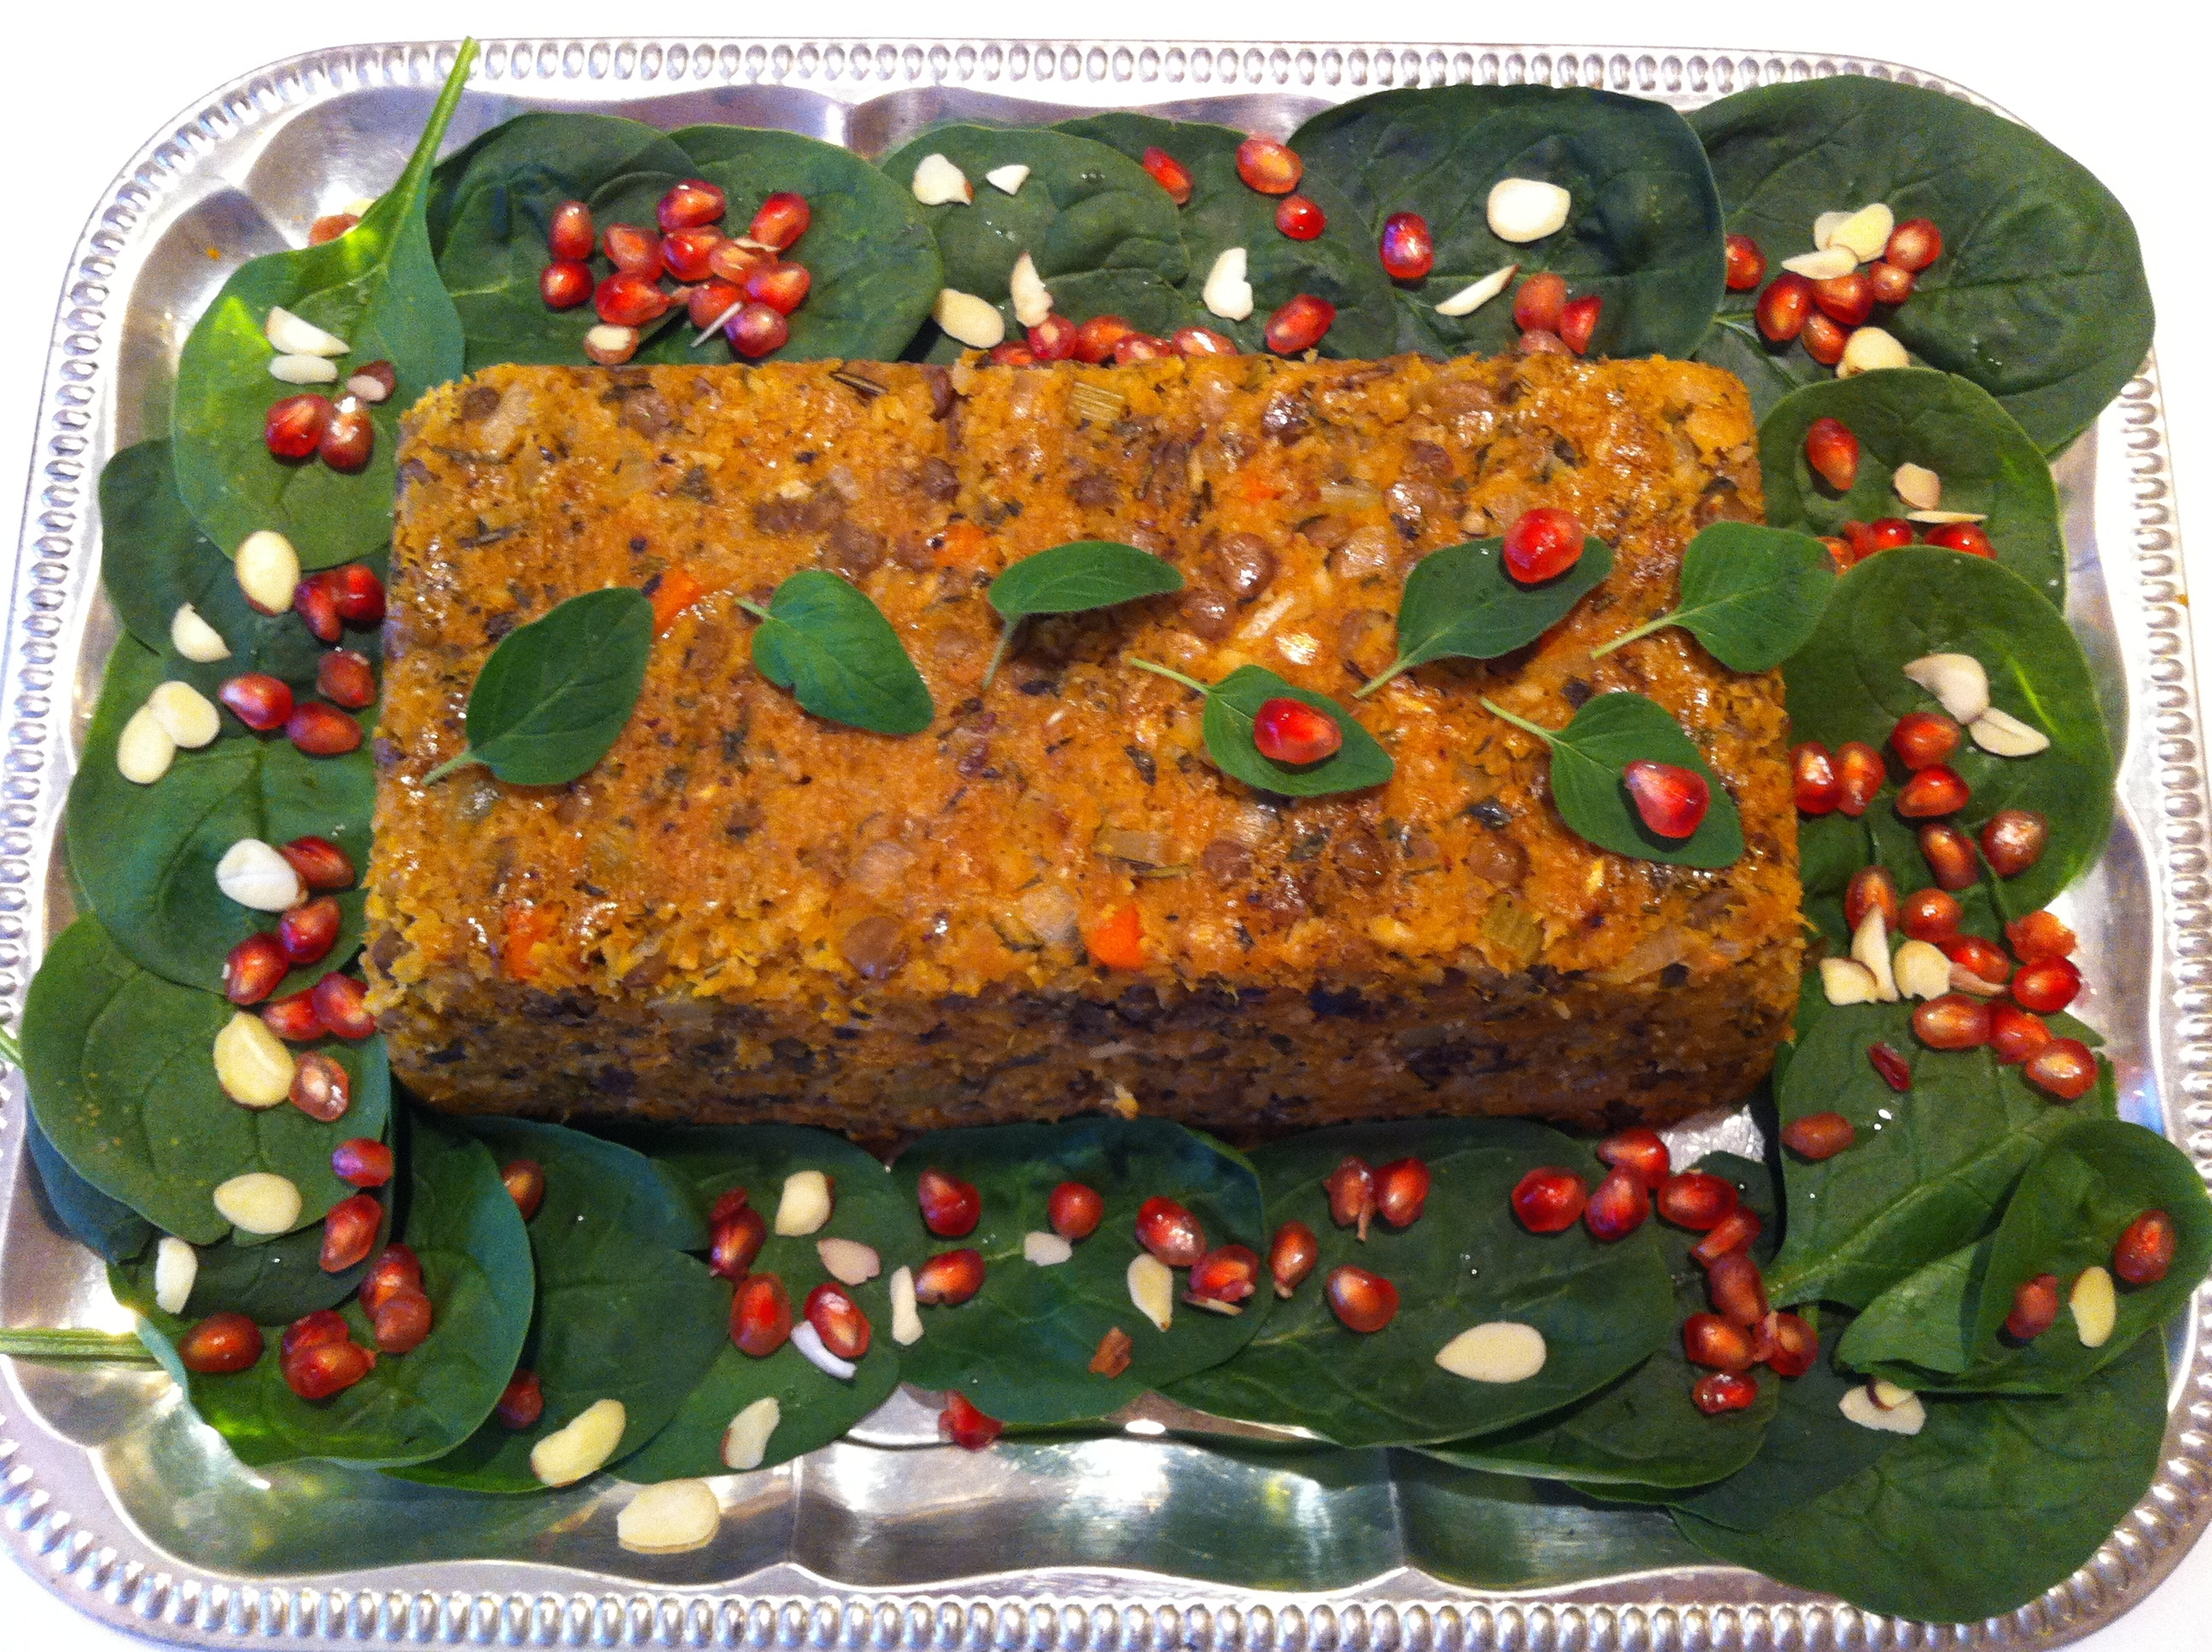 <p>A holiday lentil loaf on a bed of spinach with pomegranate seeds</p>